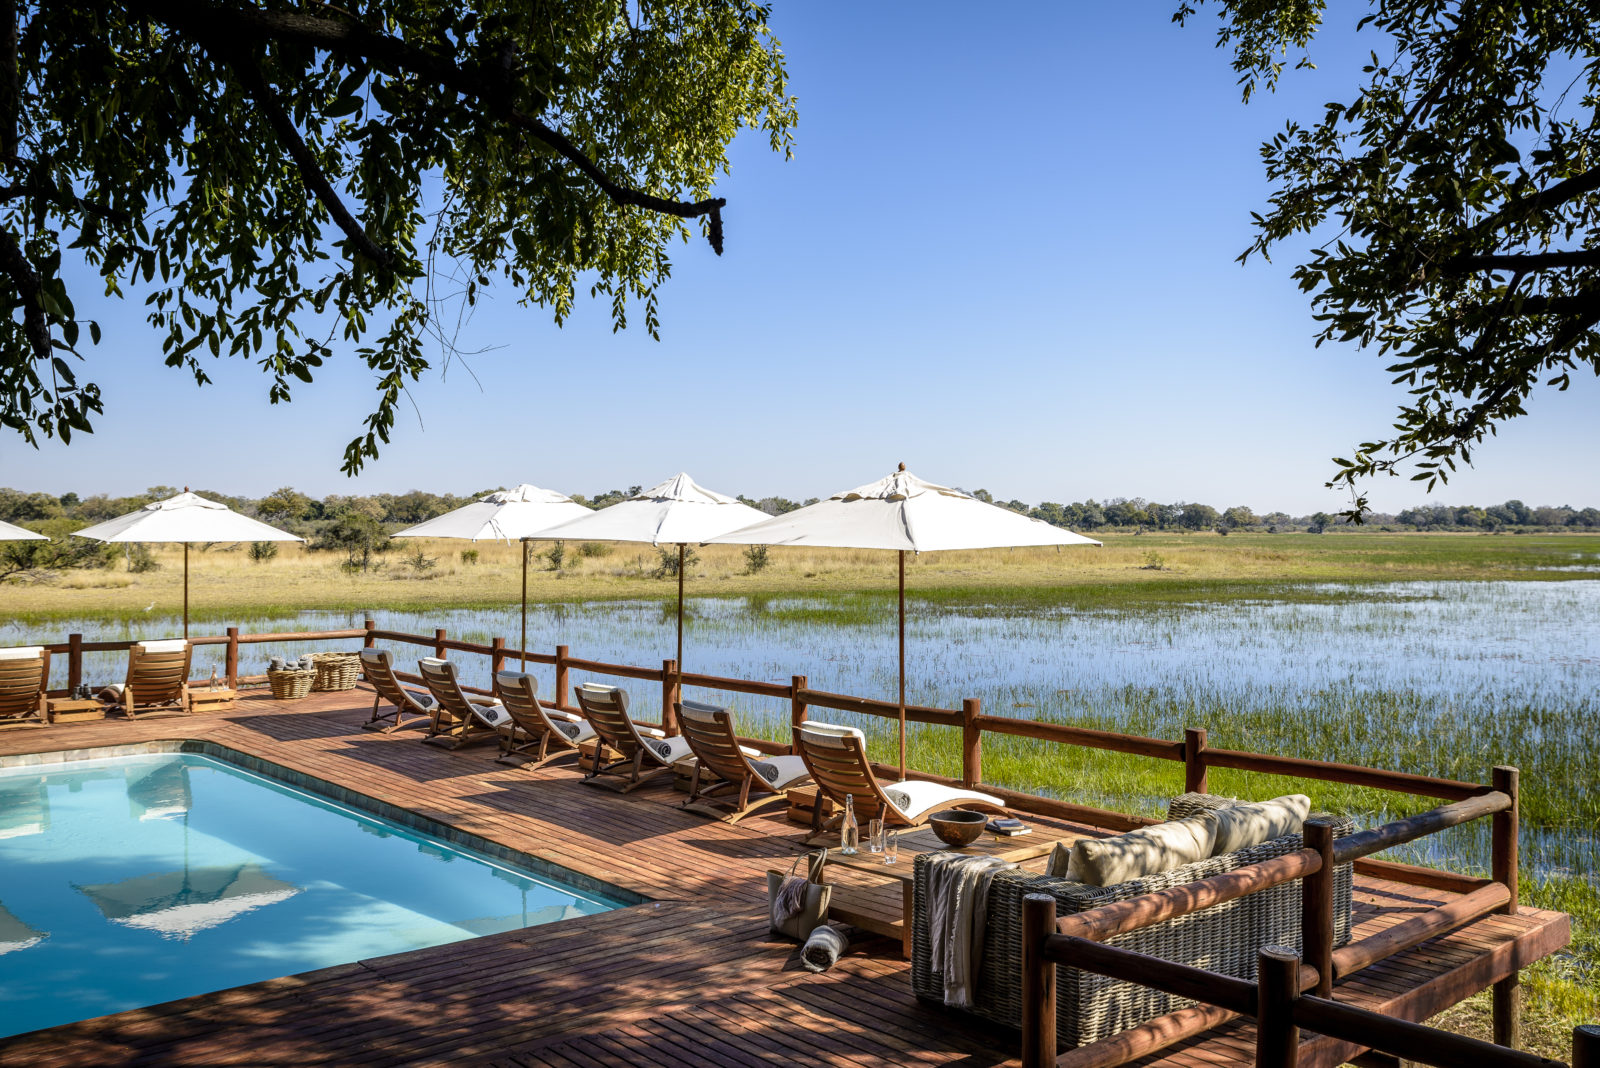 Beautifully located wooden pool deck overlooking the Delta at Sanctuary Chief's Cam